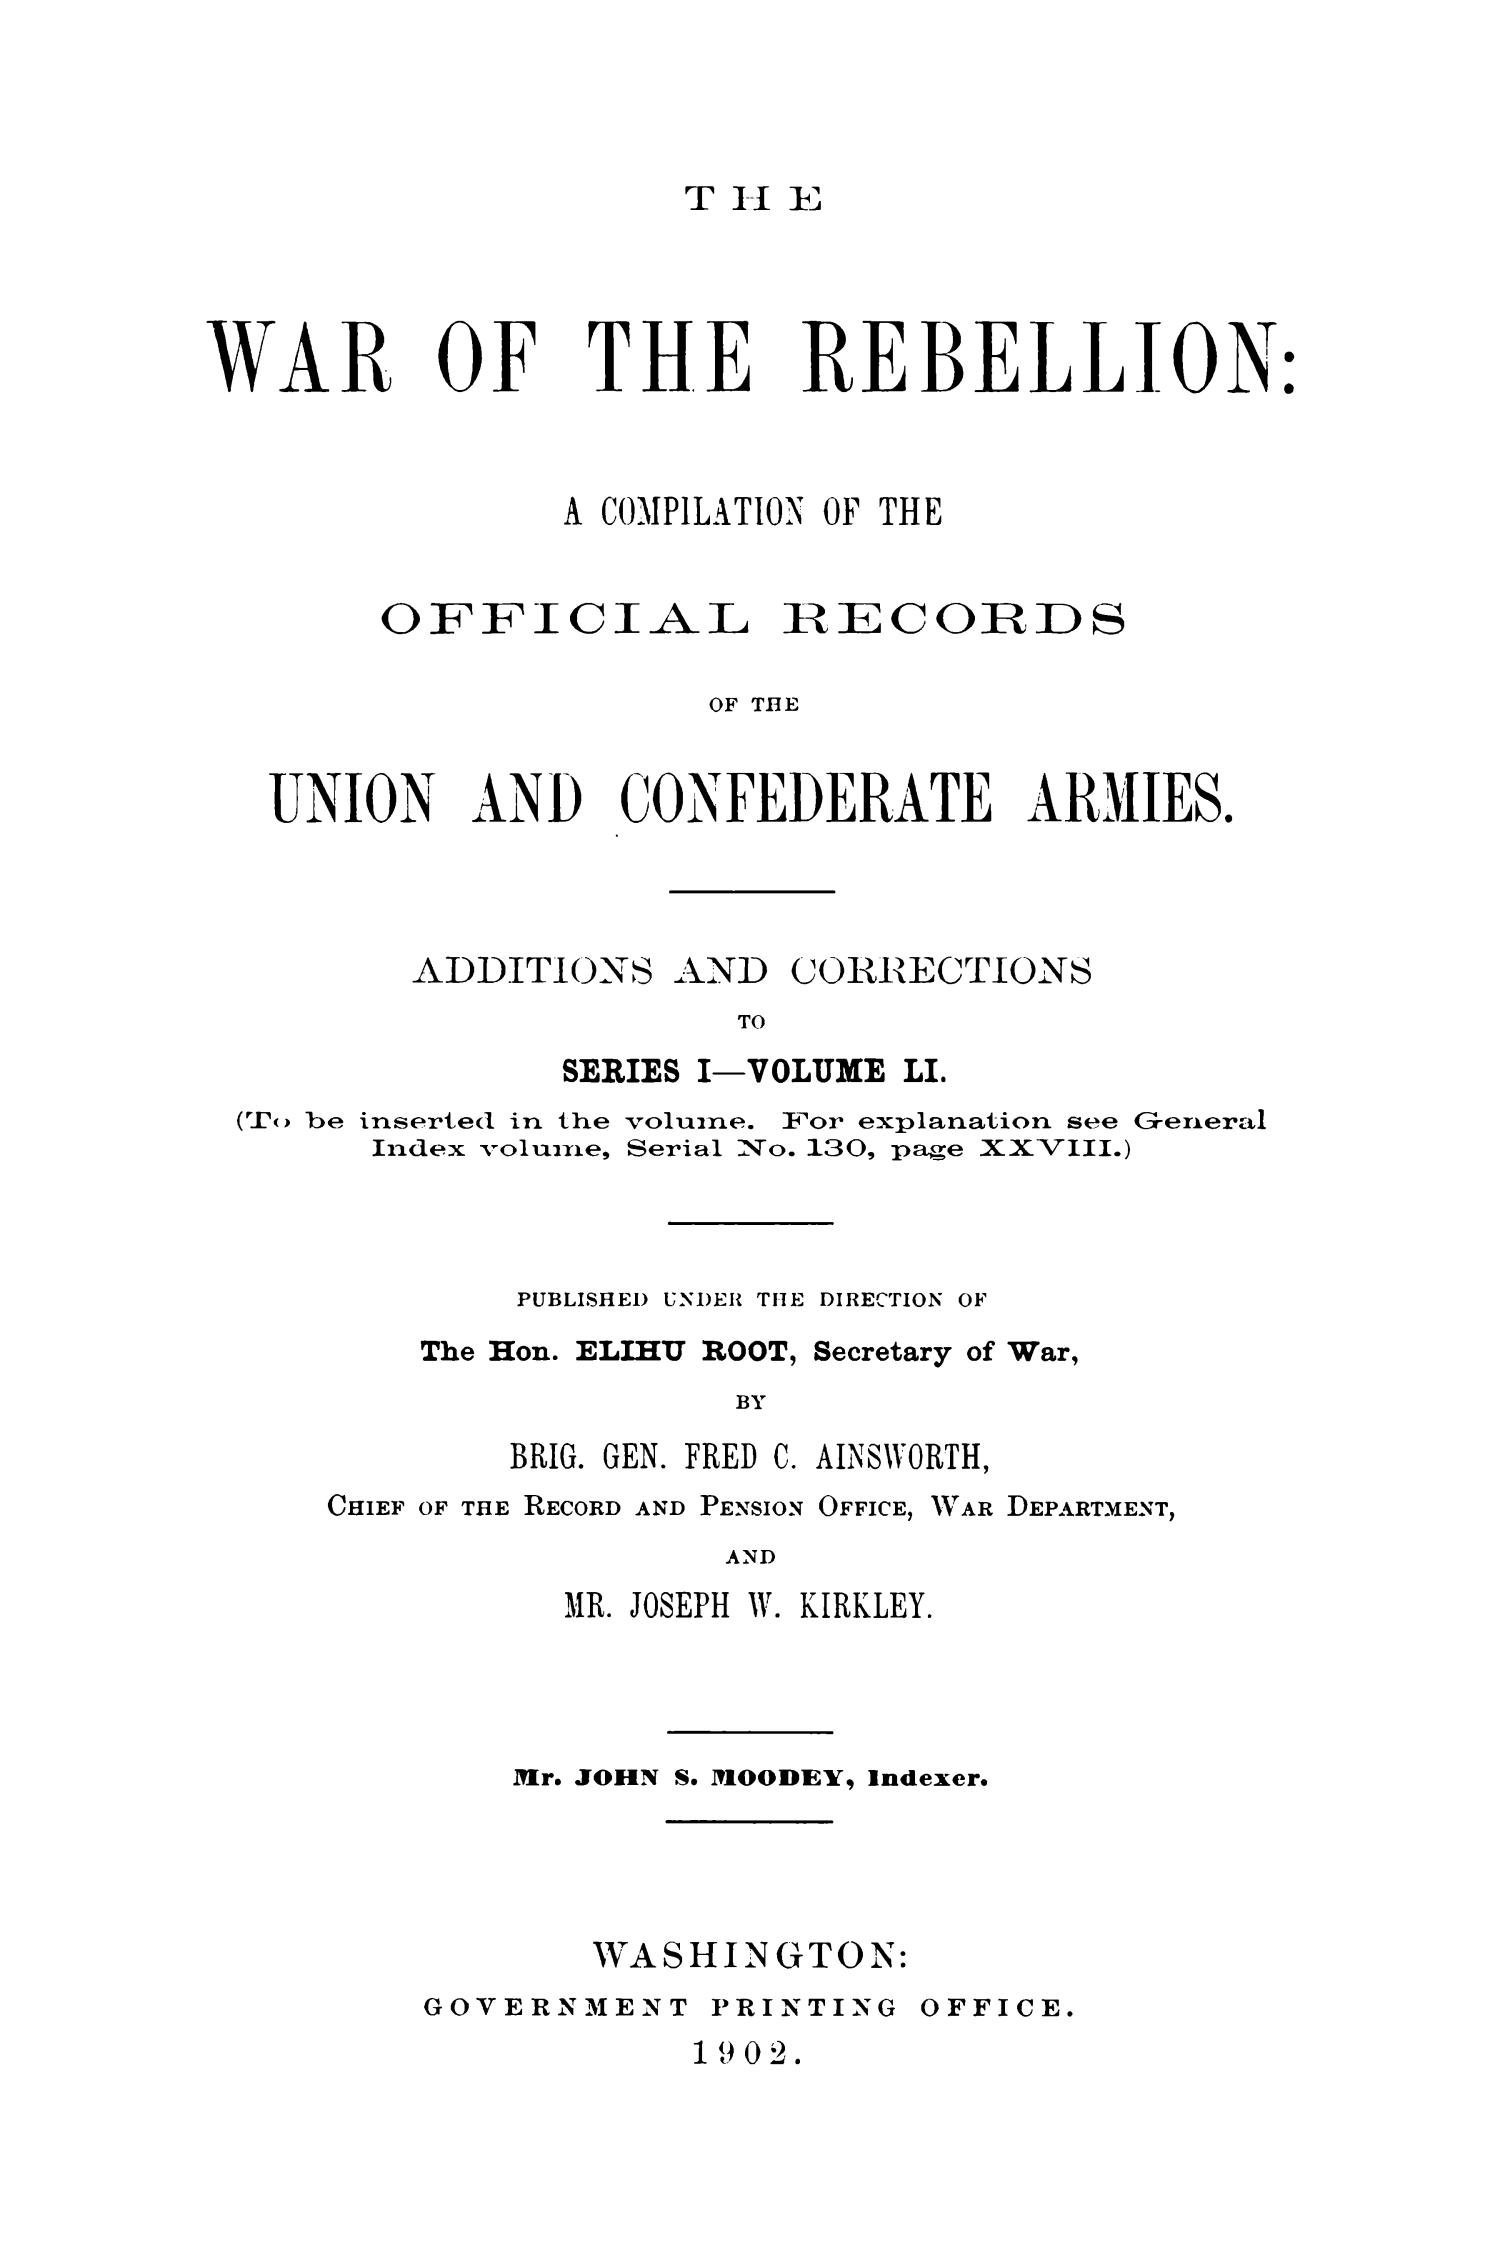 The War of the Rebellion: A Compilation of the Official Records of the Union And Confederate Armies. Additions and Corrections to Series 1, Volume 51.                                                                                                      1